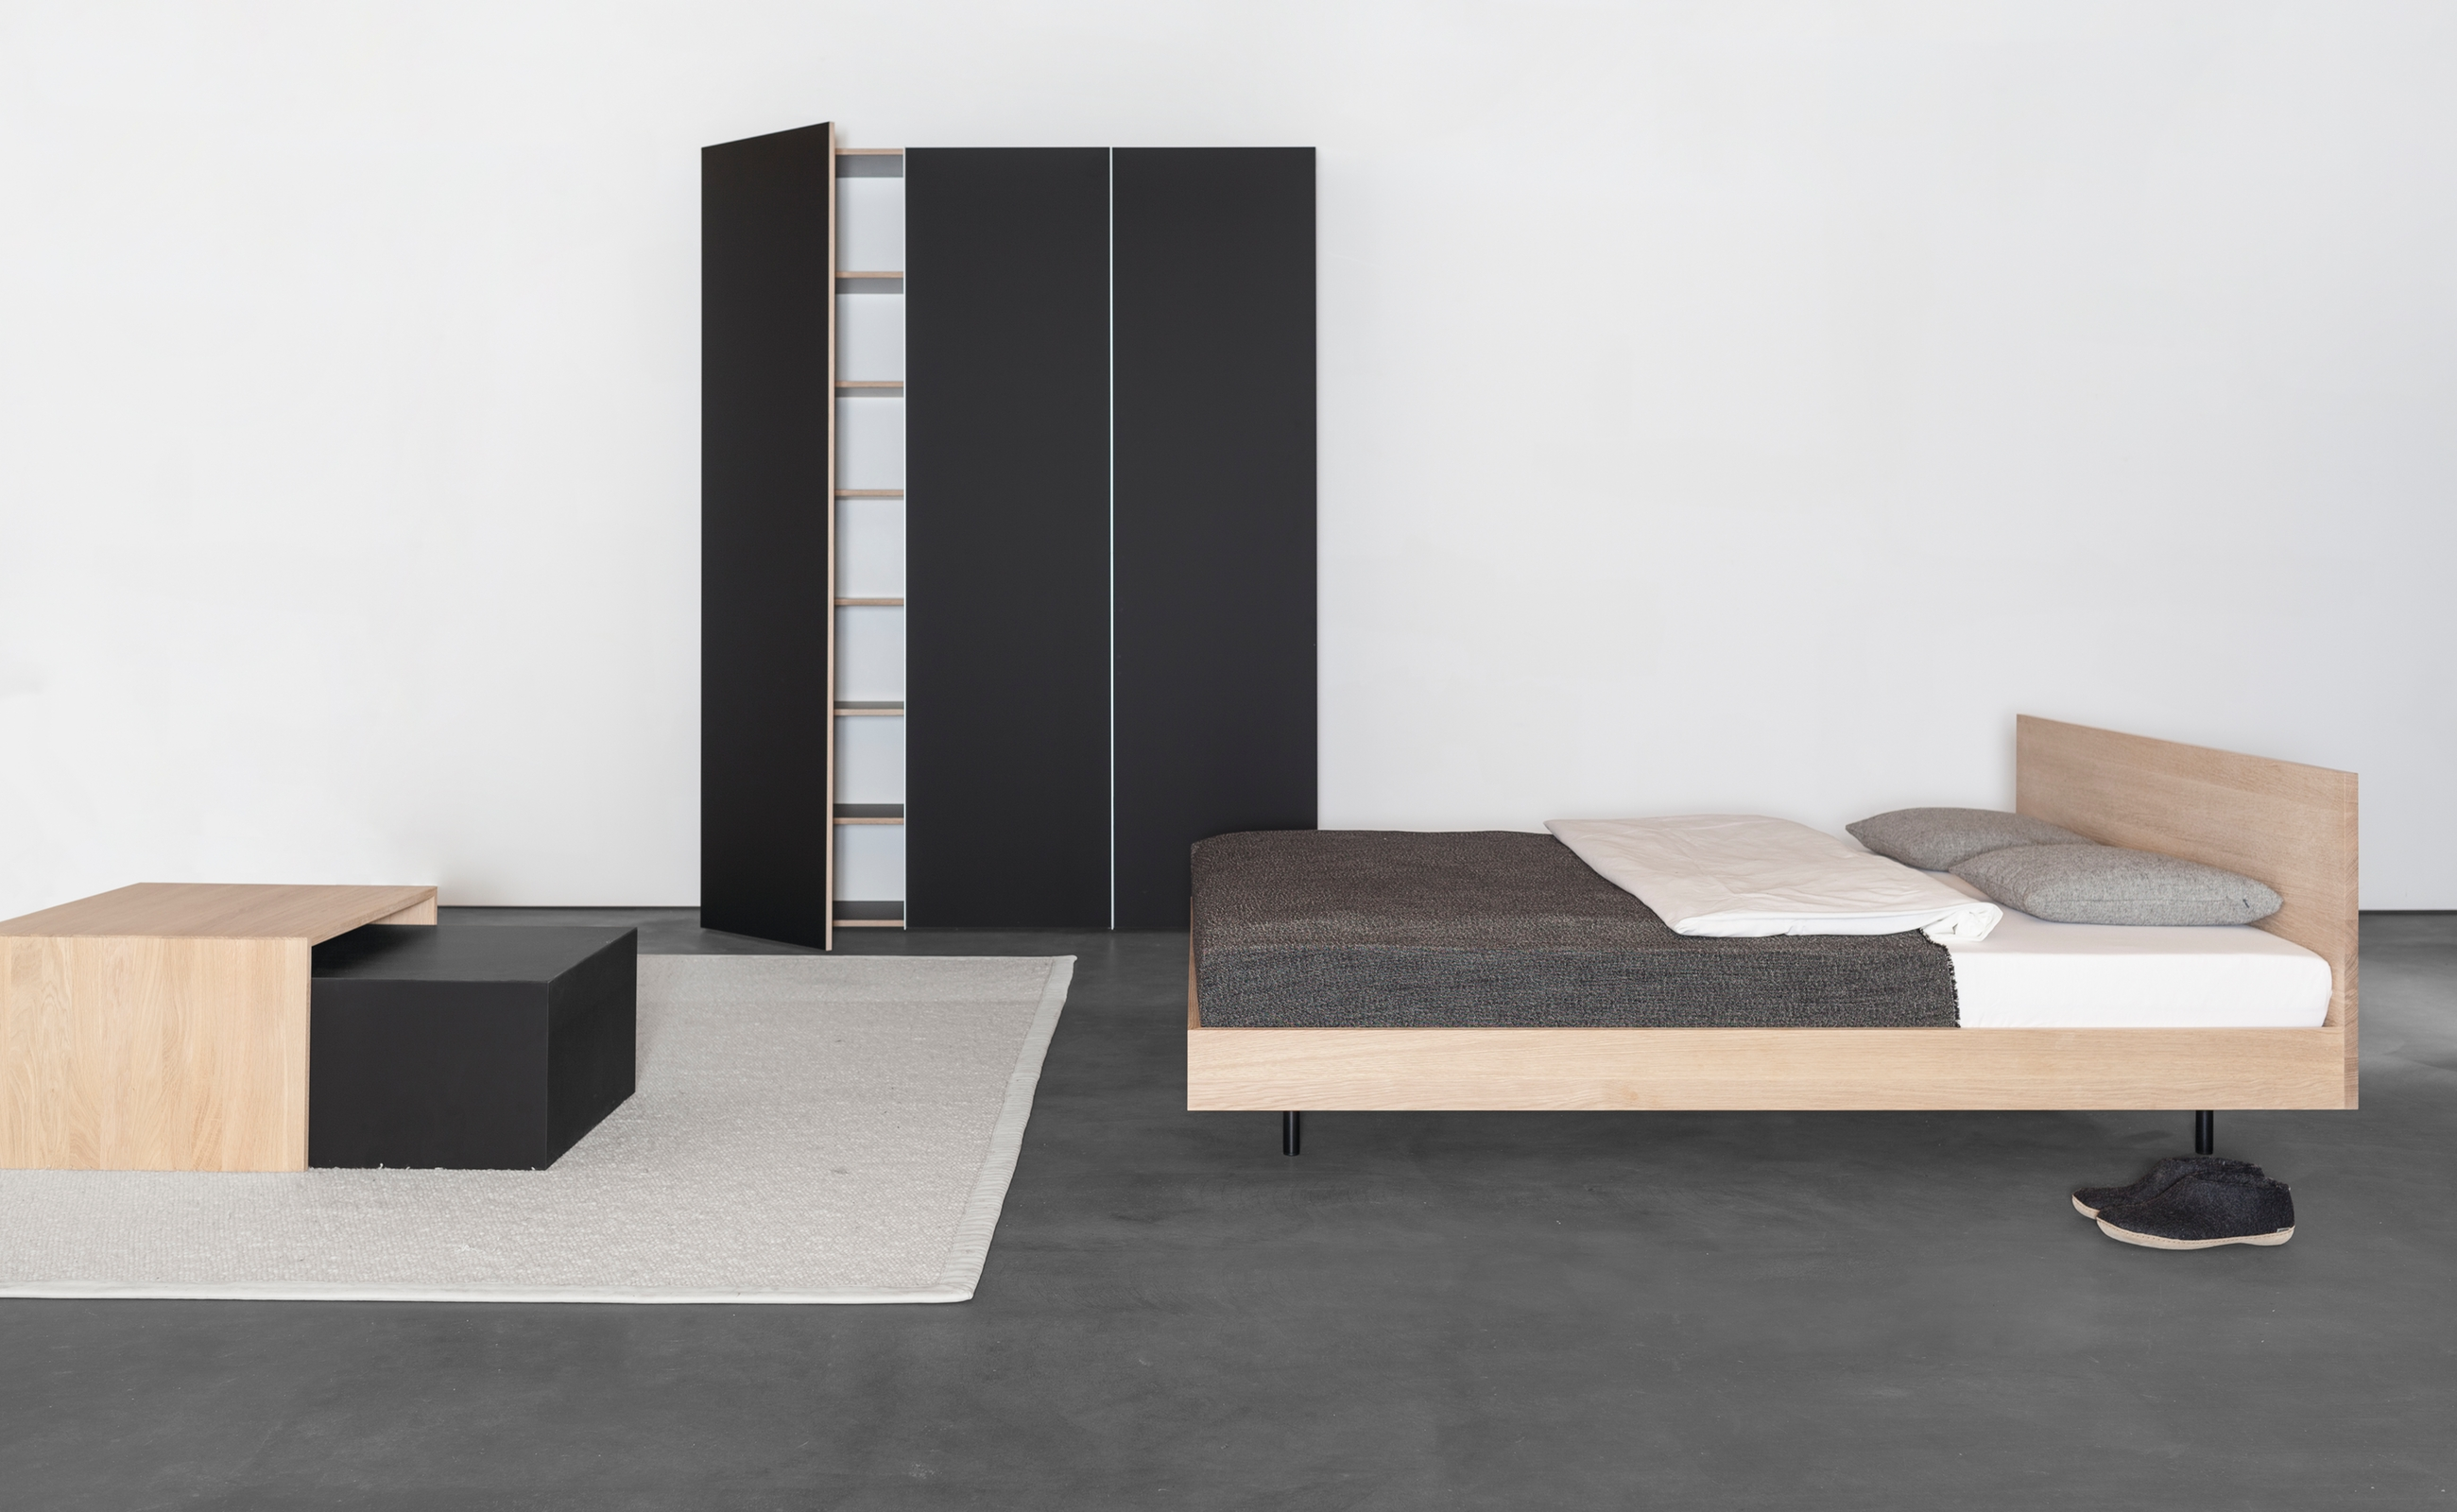 sanktjohanser bett und schrank wohnidee luzern wohnidee. Black Bedroom Furniture Sets. Home Design Ideas